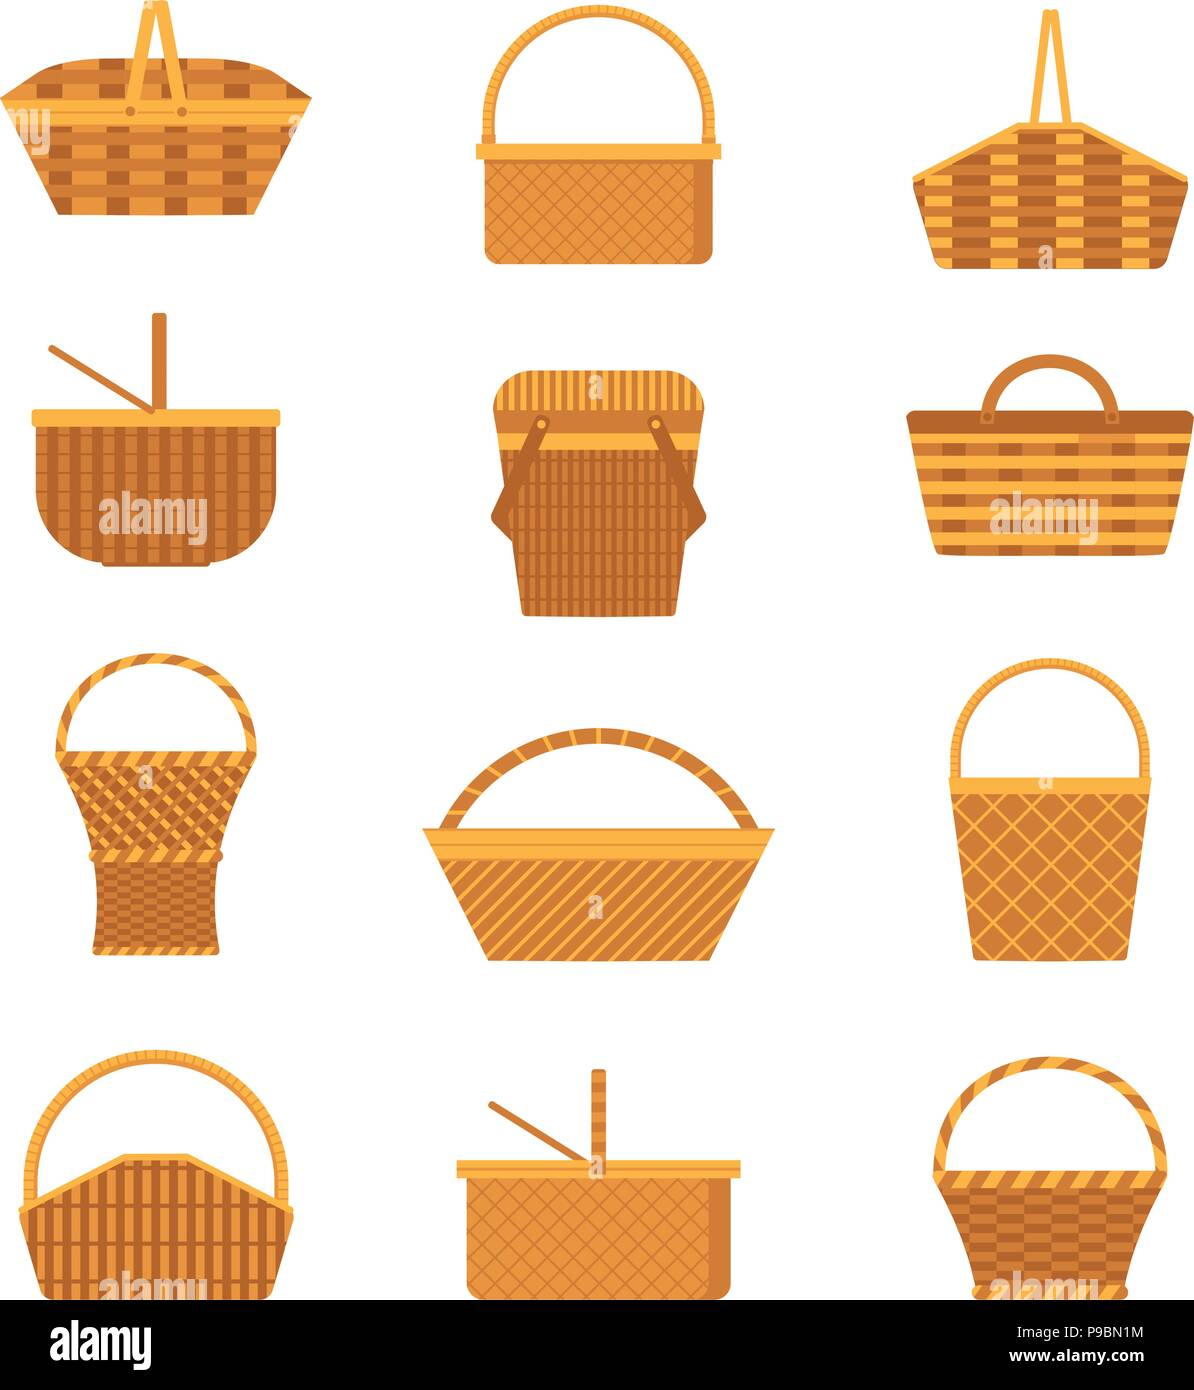 Wicker Picnic Basket Icons - Stock Vector